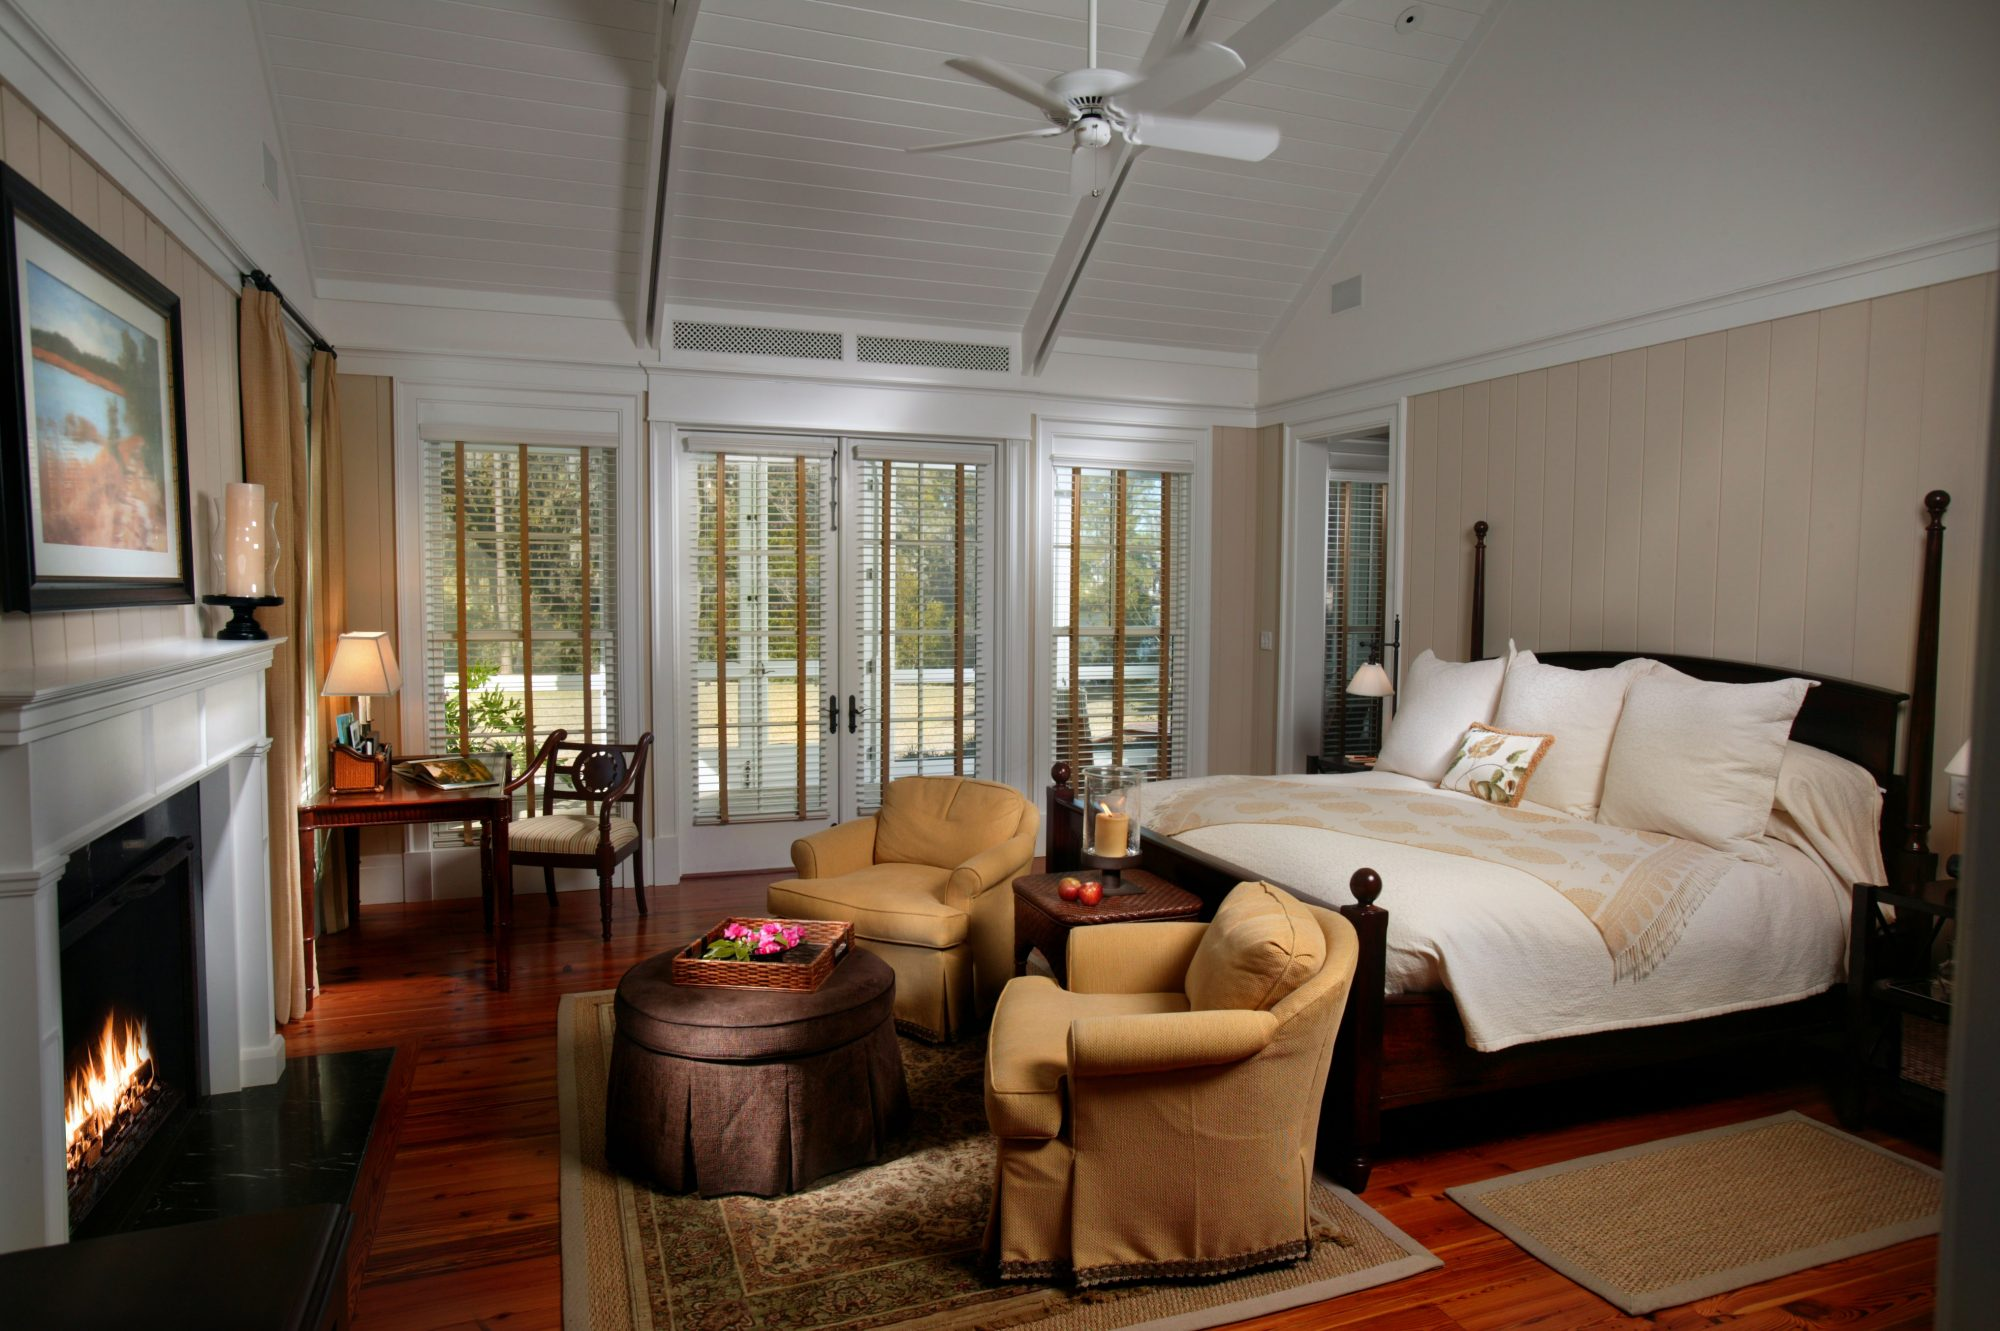 No. 2 Inn at Palmetto Bluff, A Montage Resort in Bluffton, South Carolina